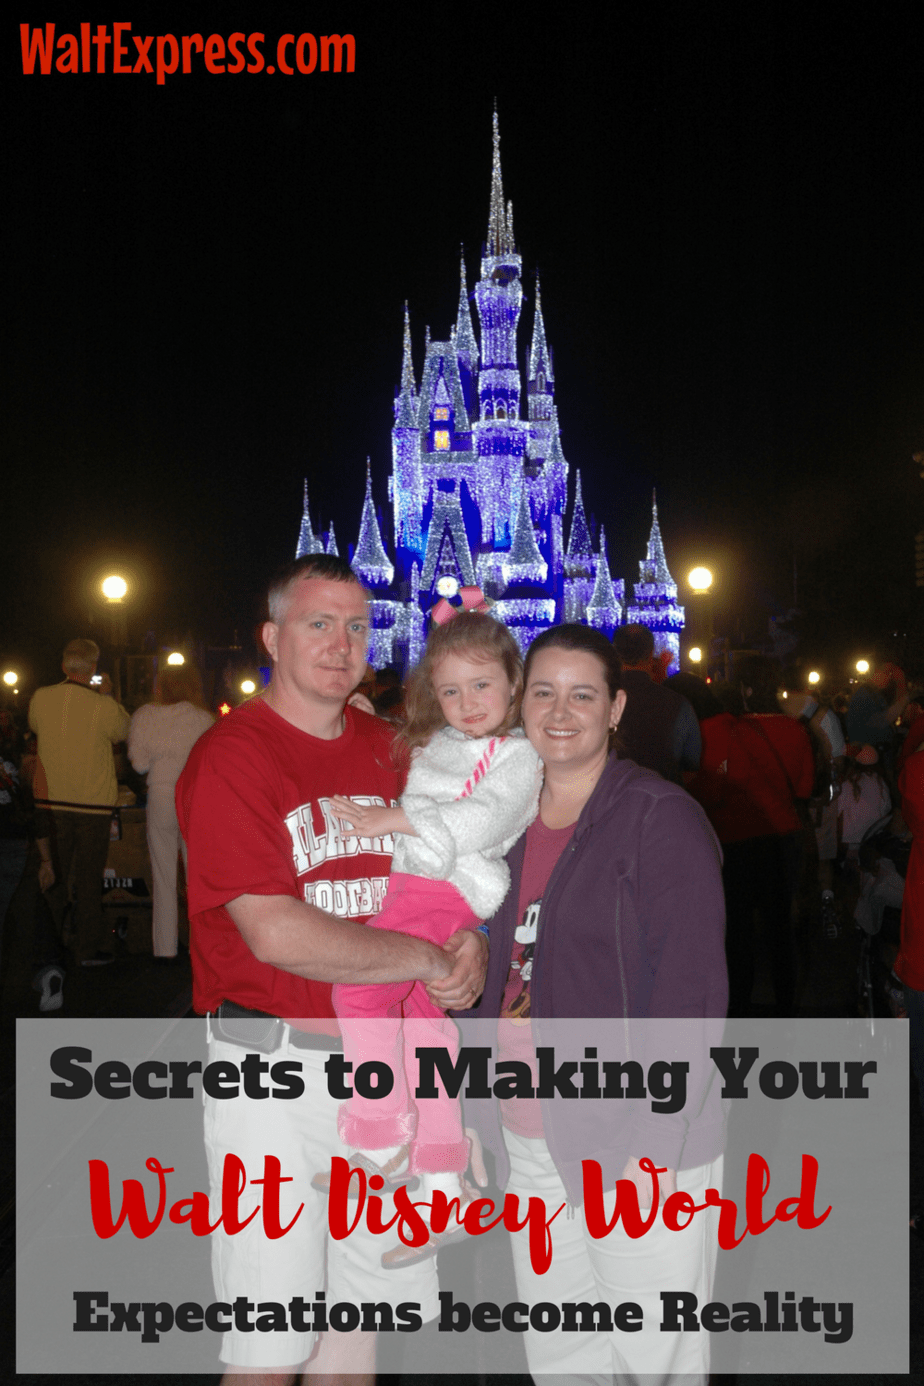 Secrets-to-Making-Your-Walt-Disney-World-Expectations-Reality